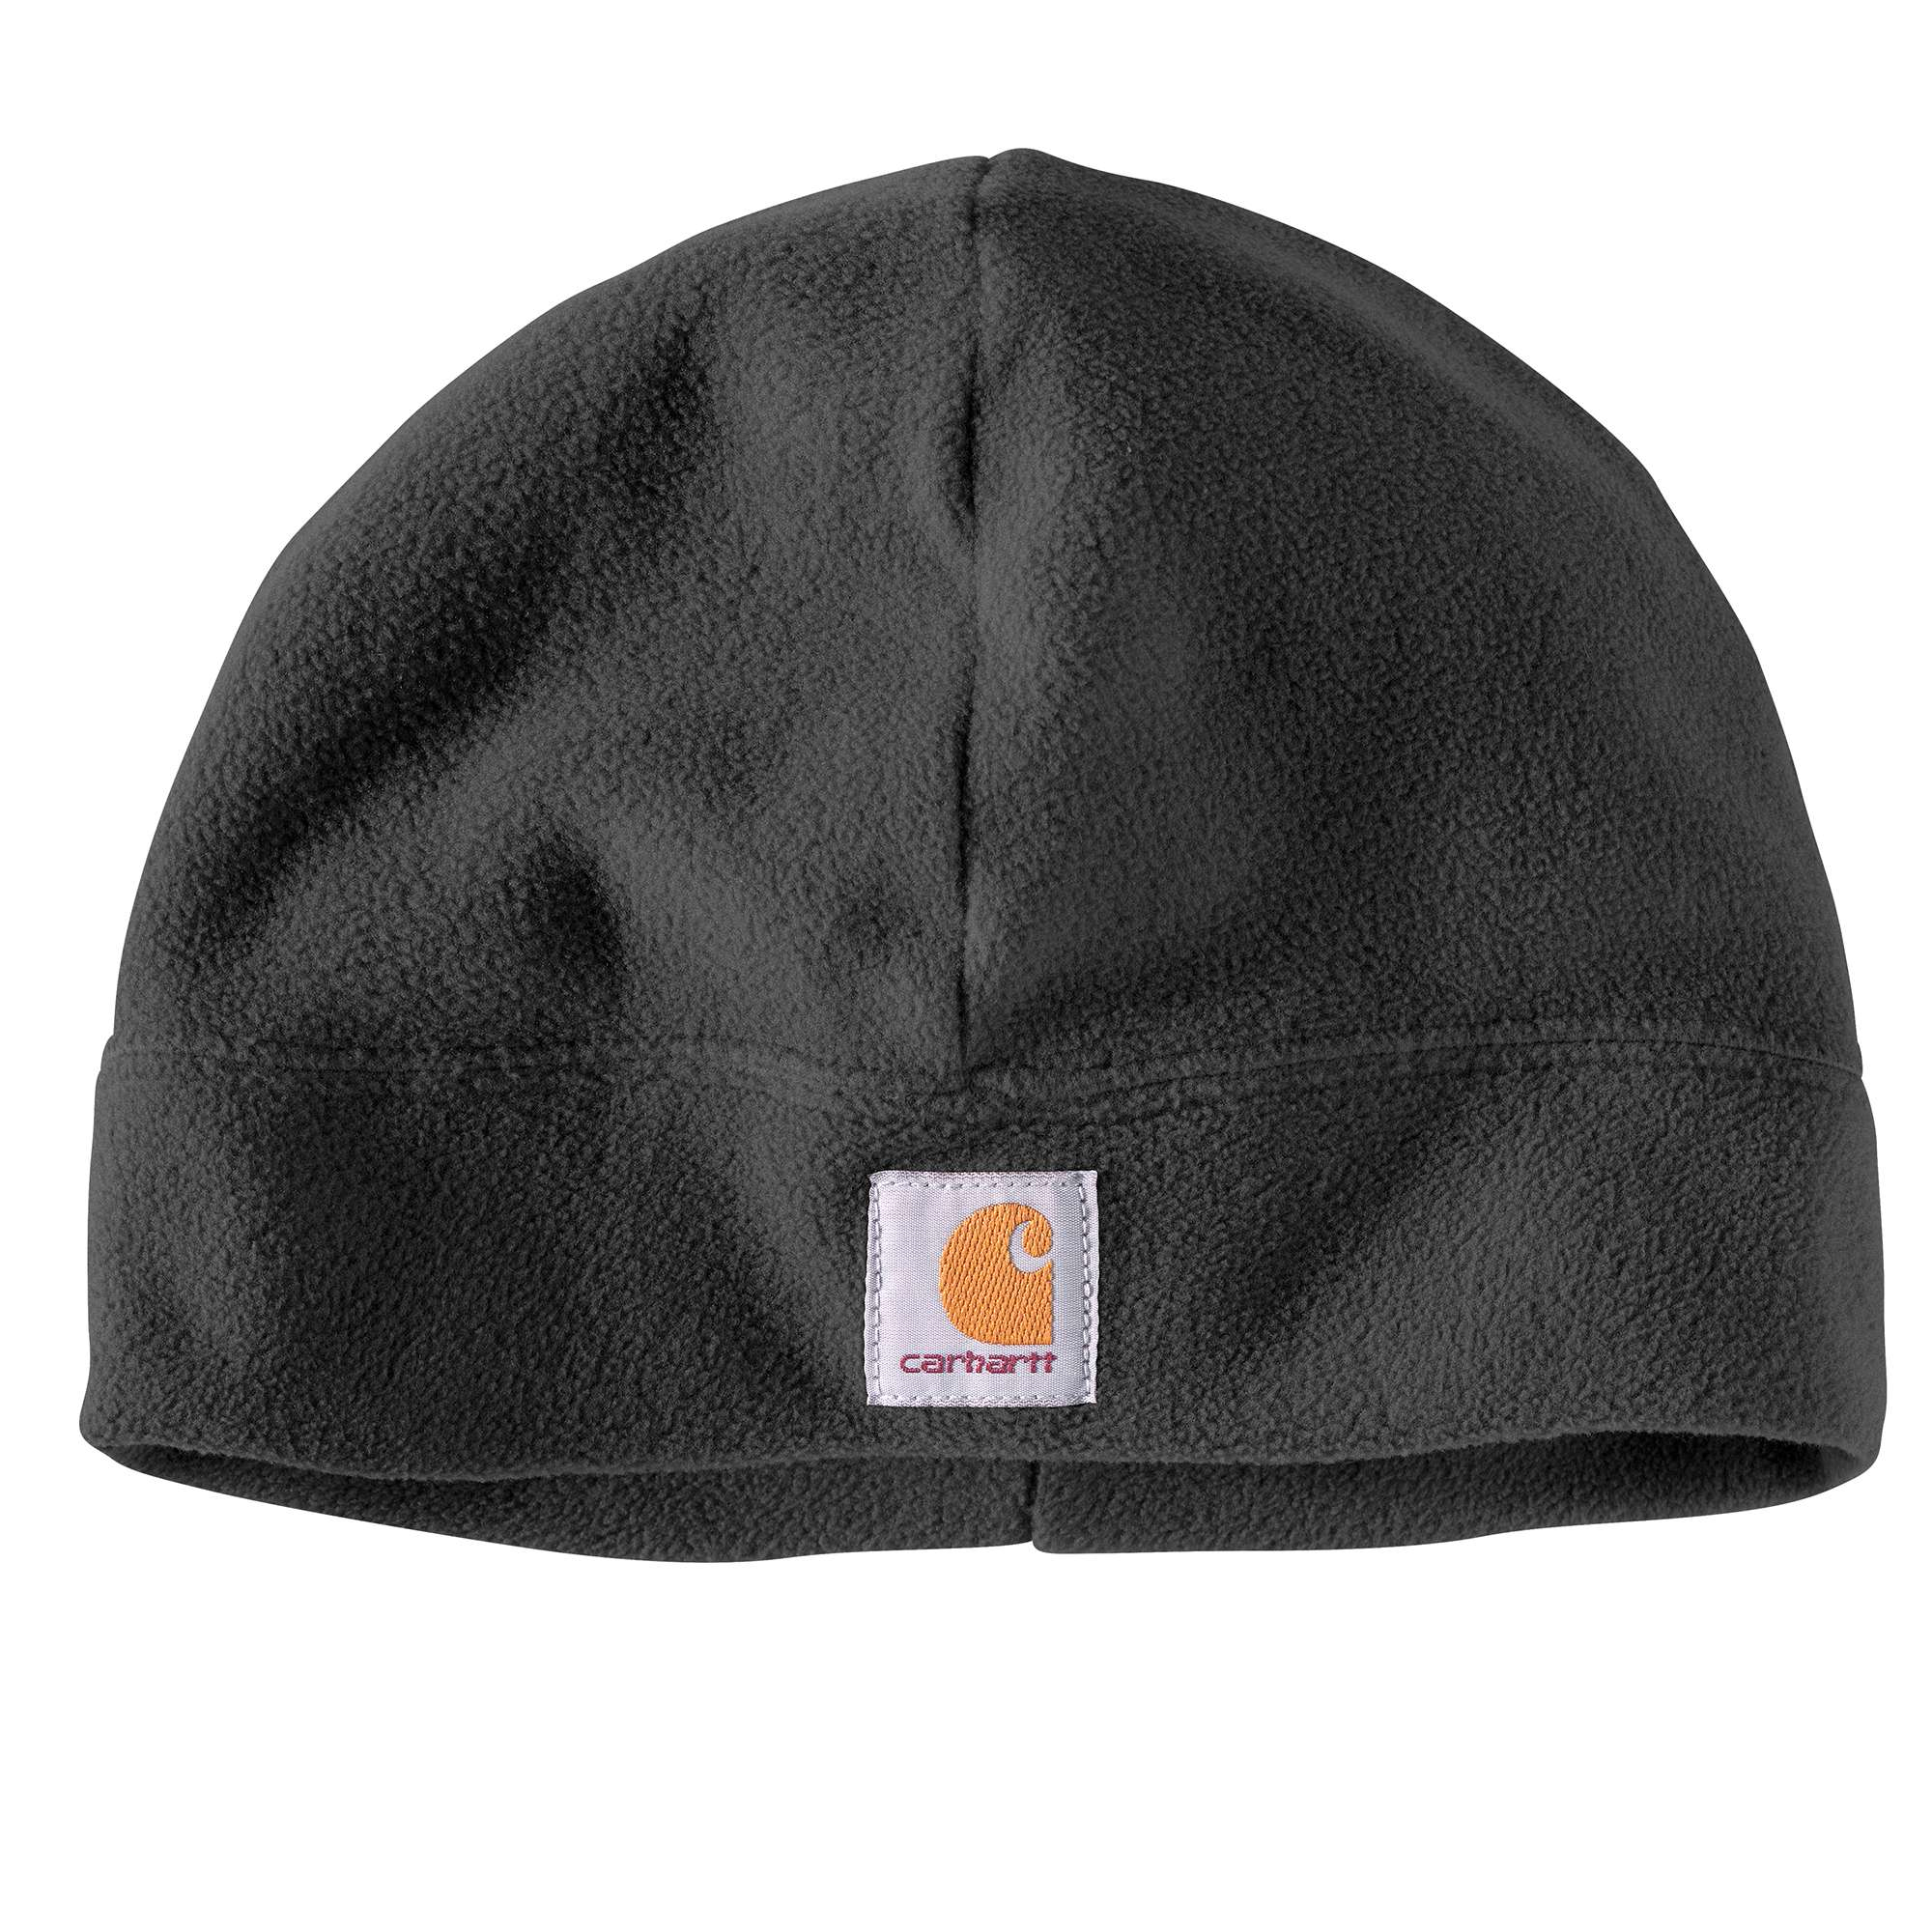 Fleece Beanie, Black, swatch